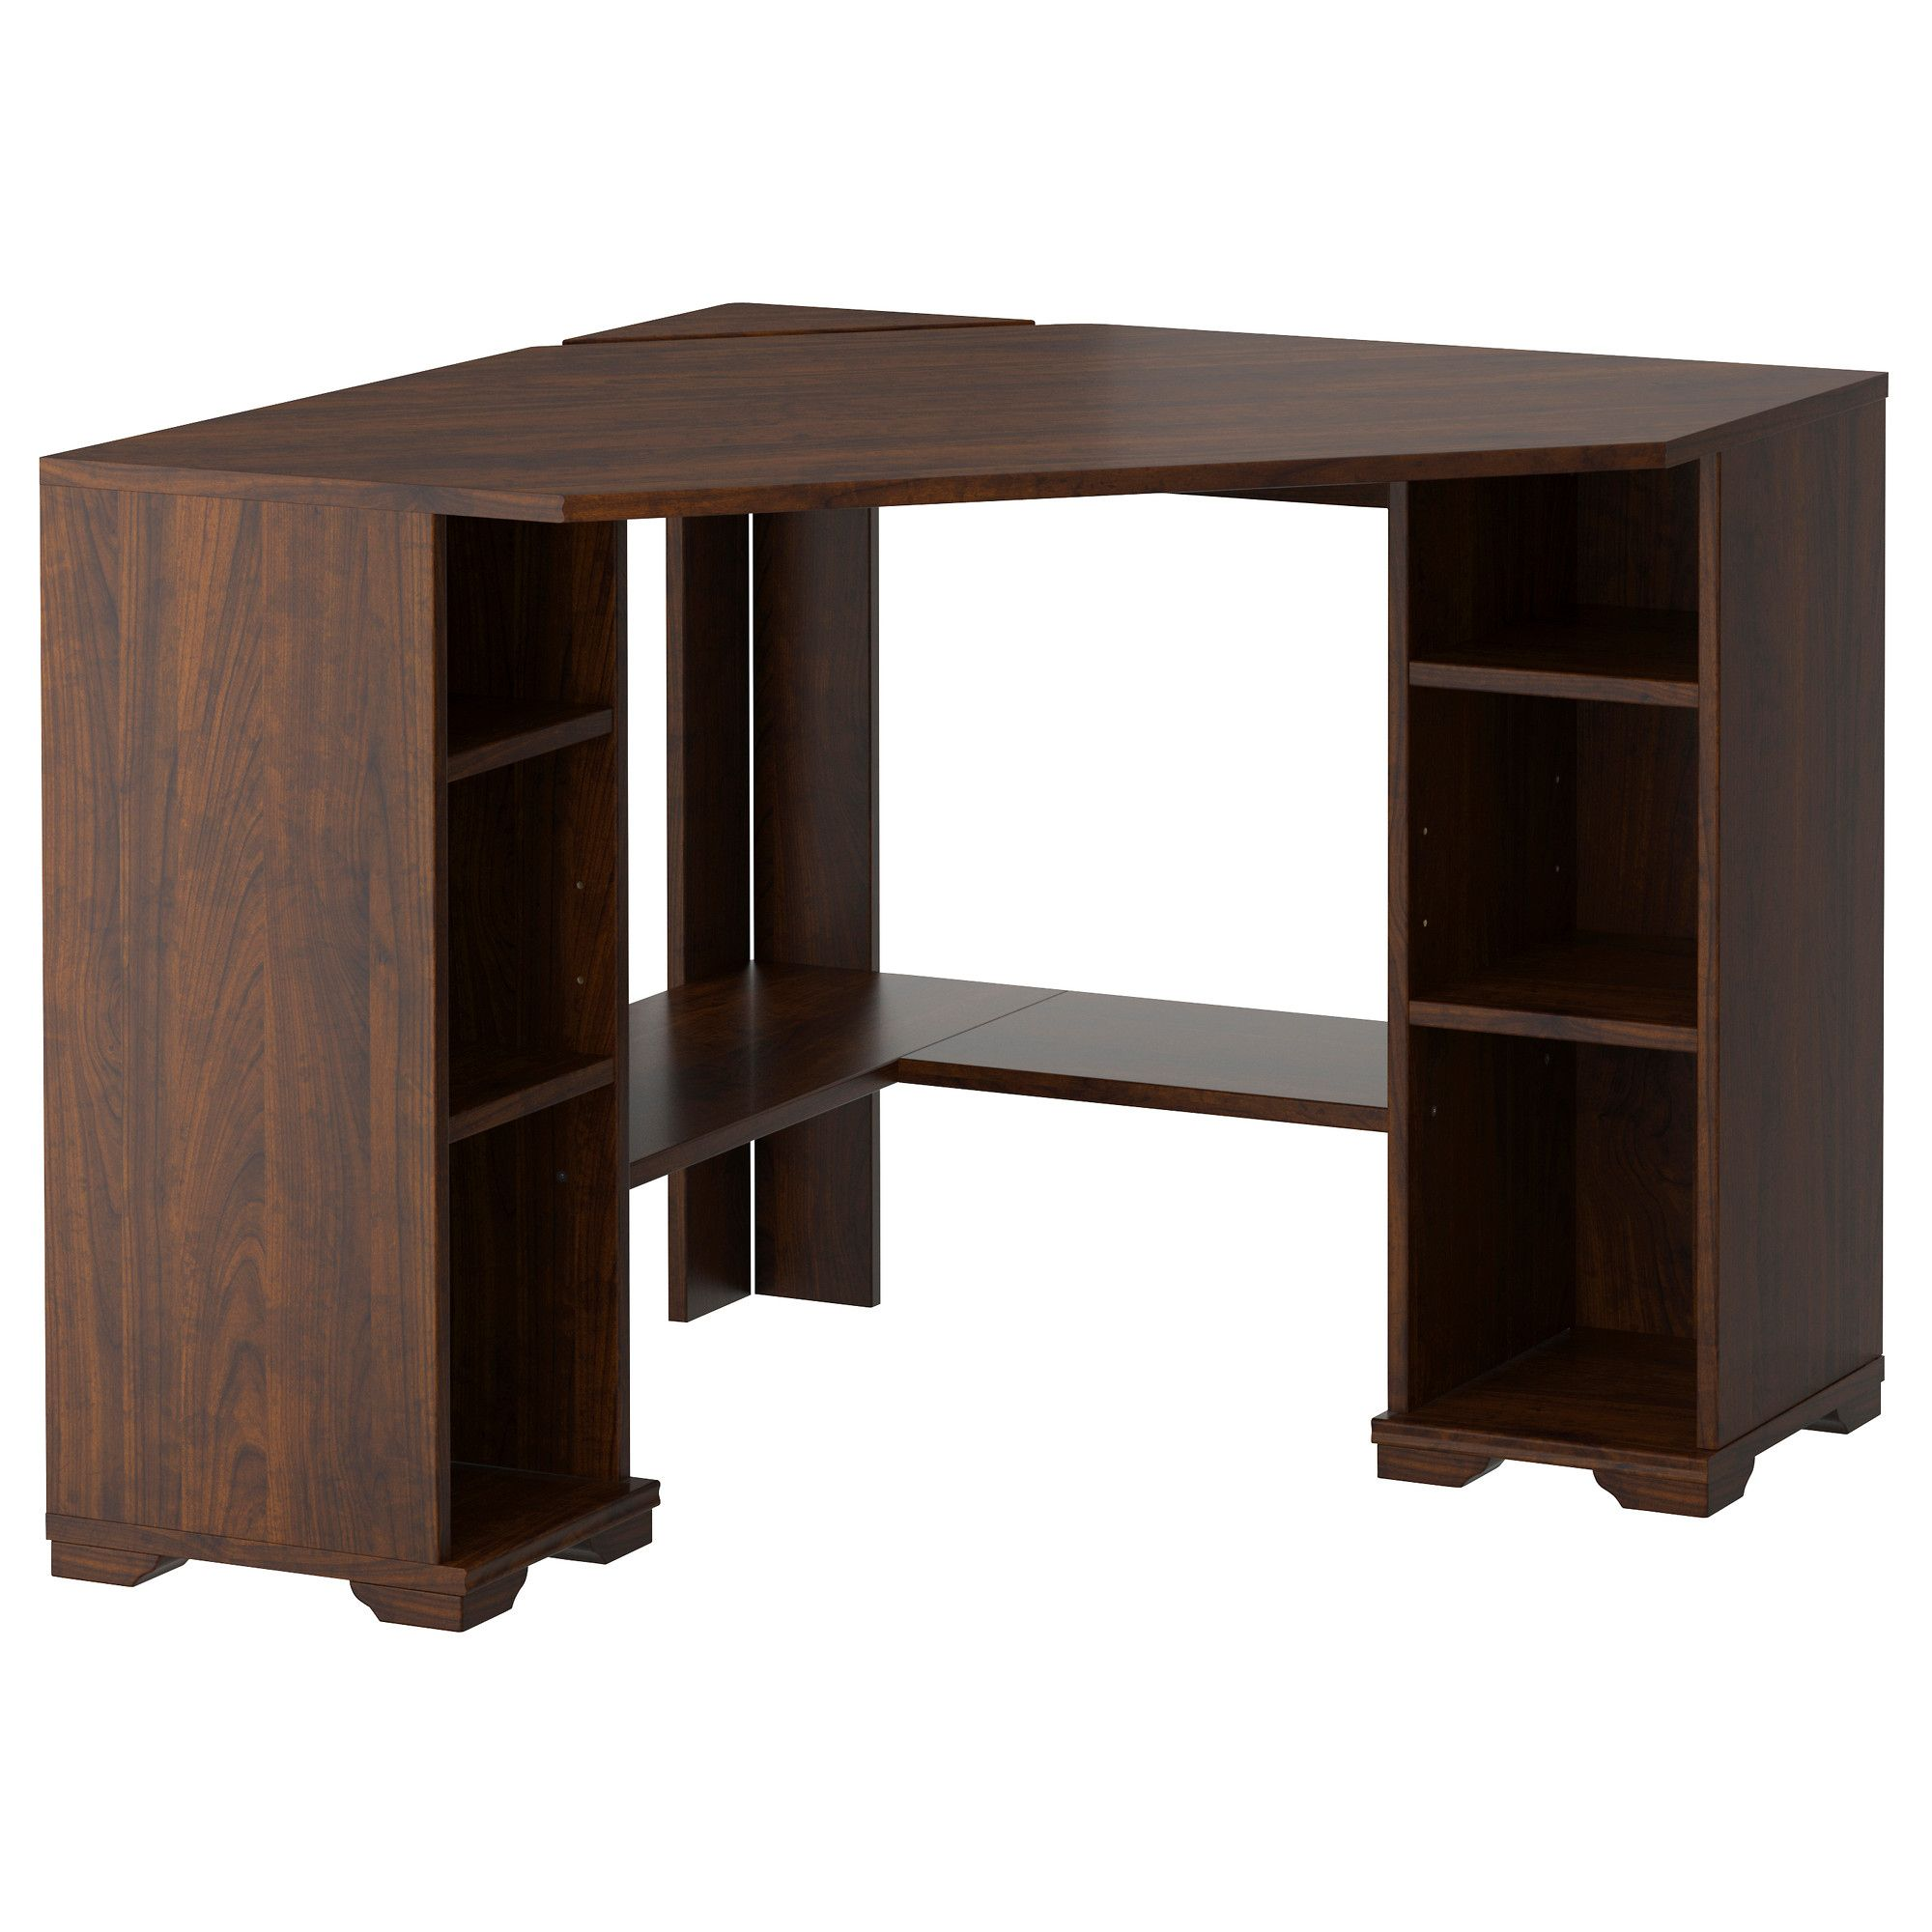 right with computer the ikea shelves hack corner office furniture your hutch beautiful of for desk